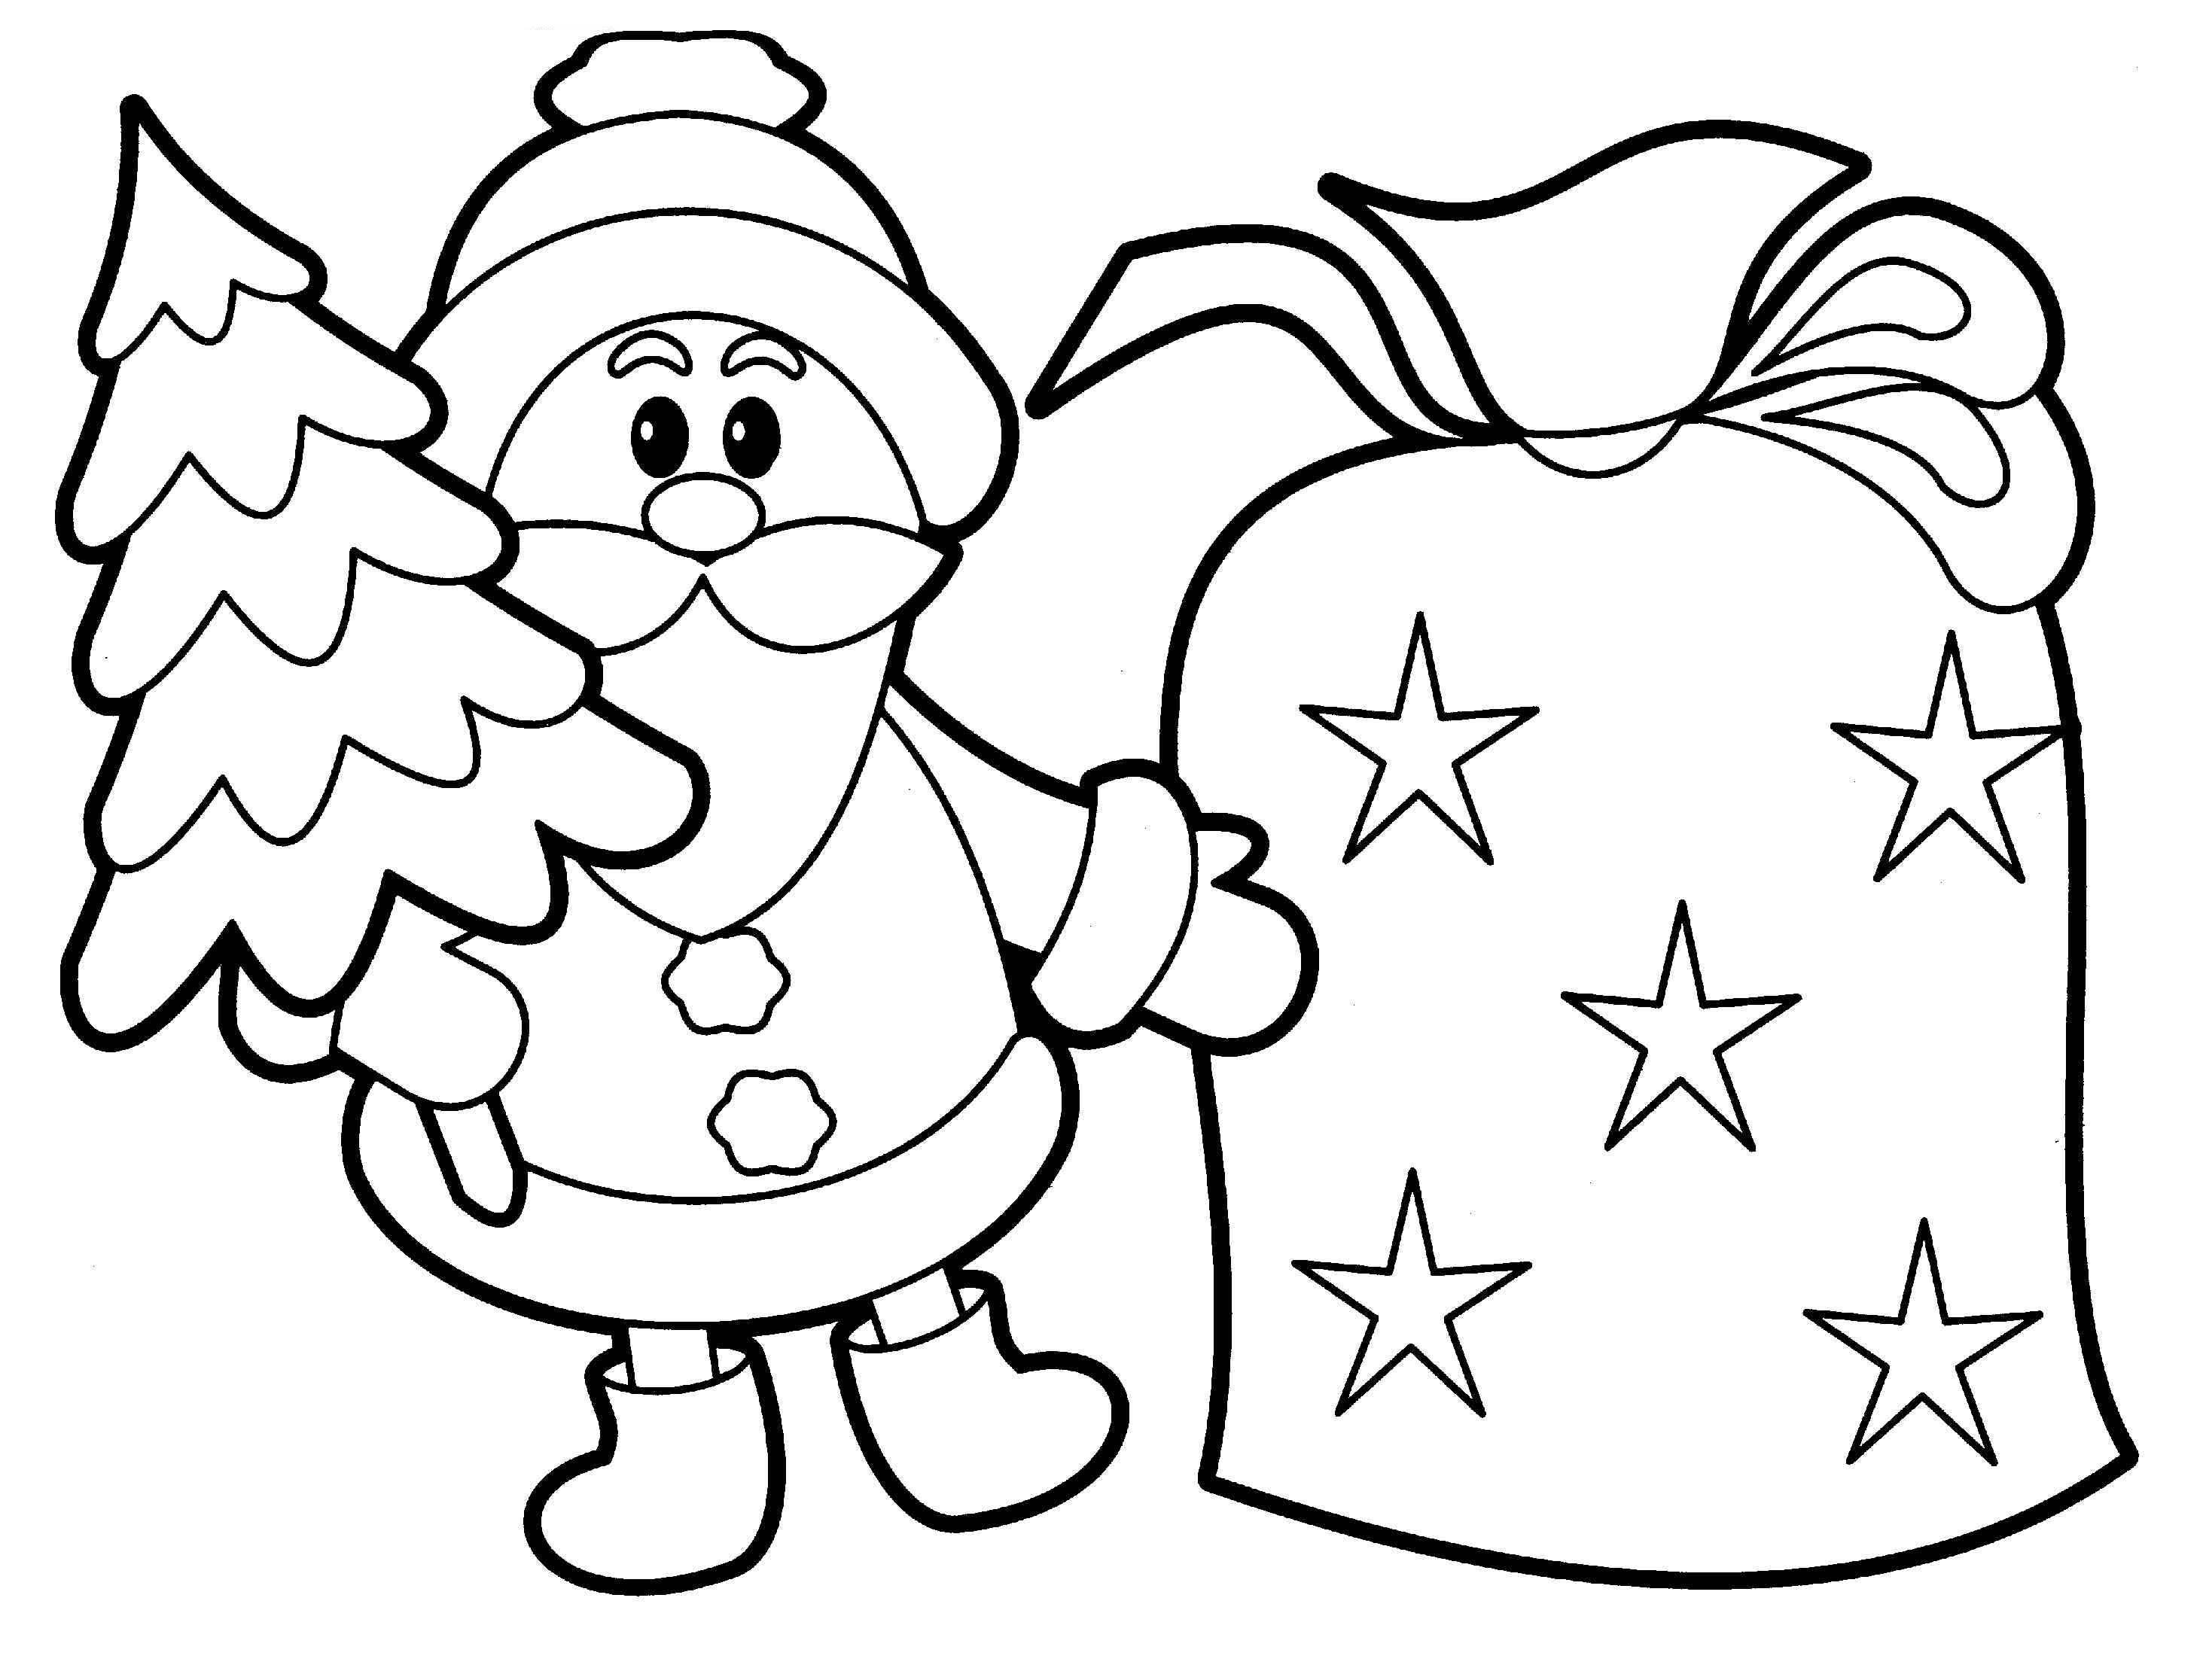 easy preschool coloring pages. Black Bedroom Furniture Sets. Home Design Ideas